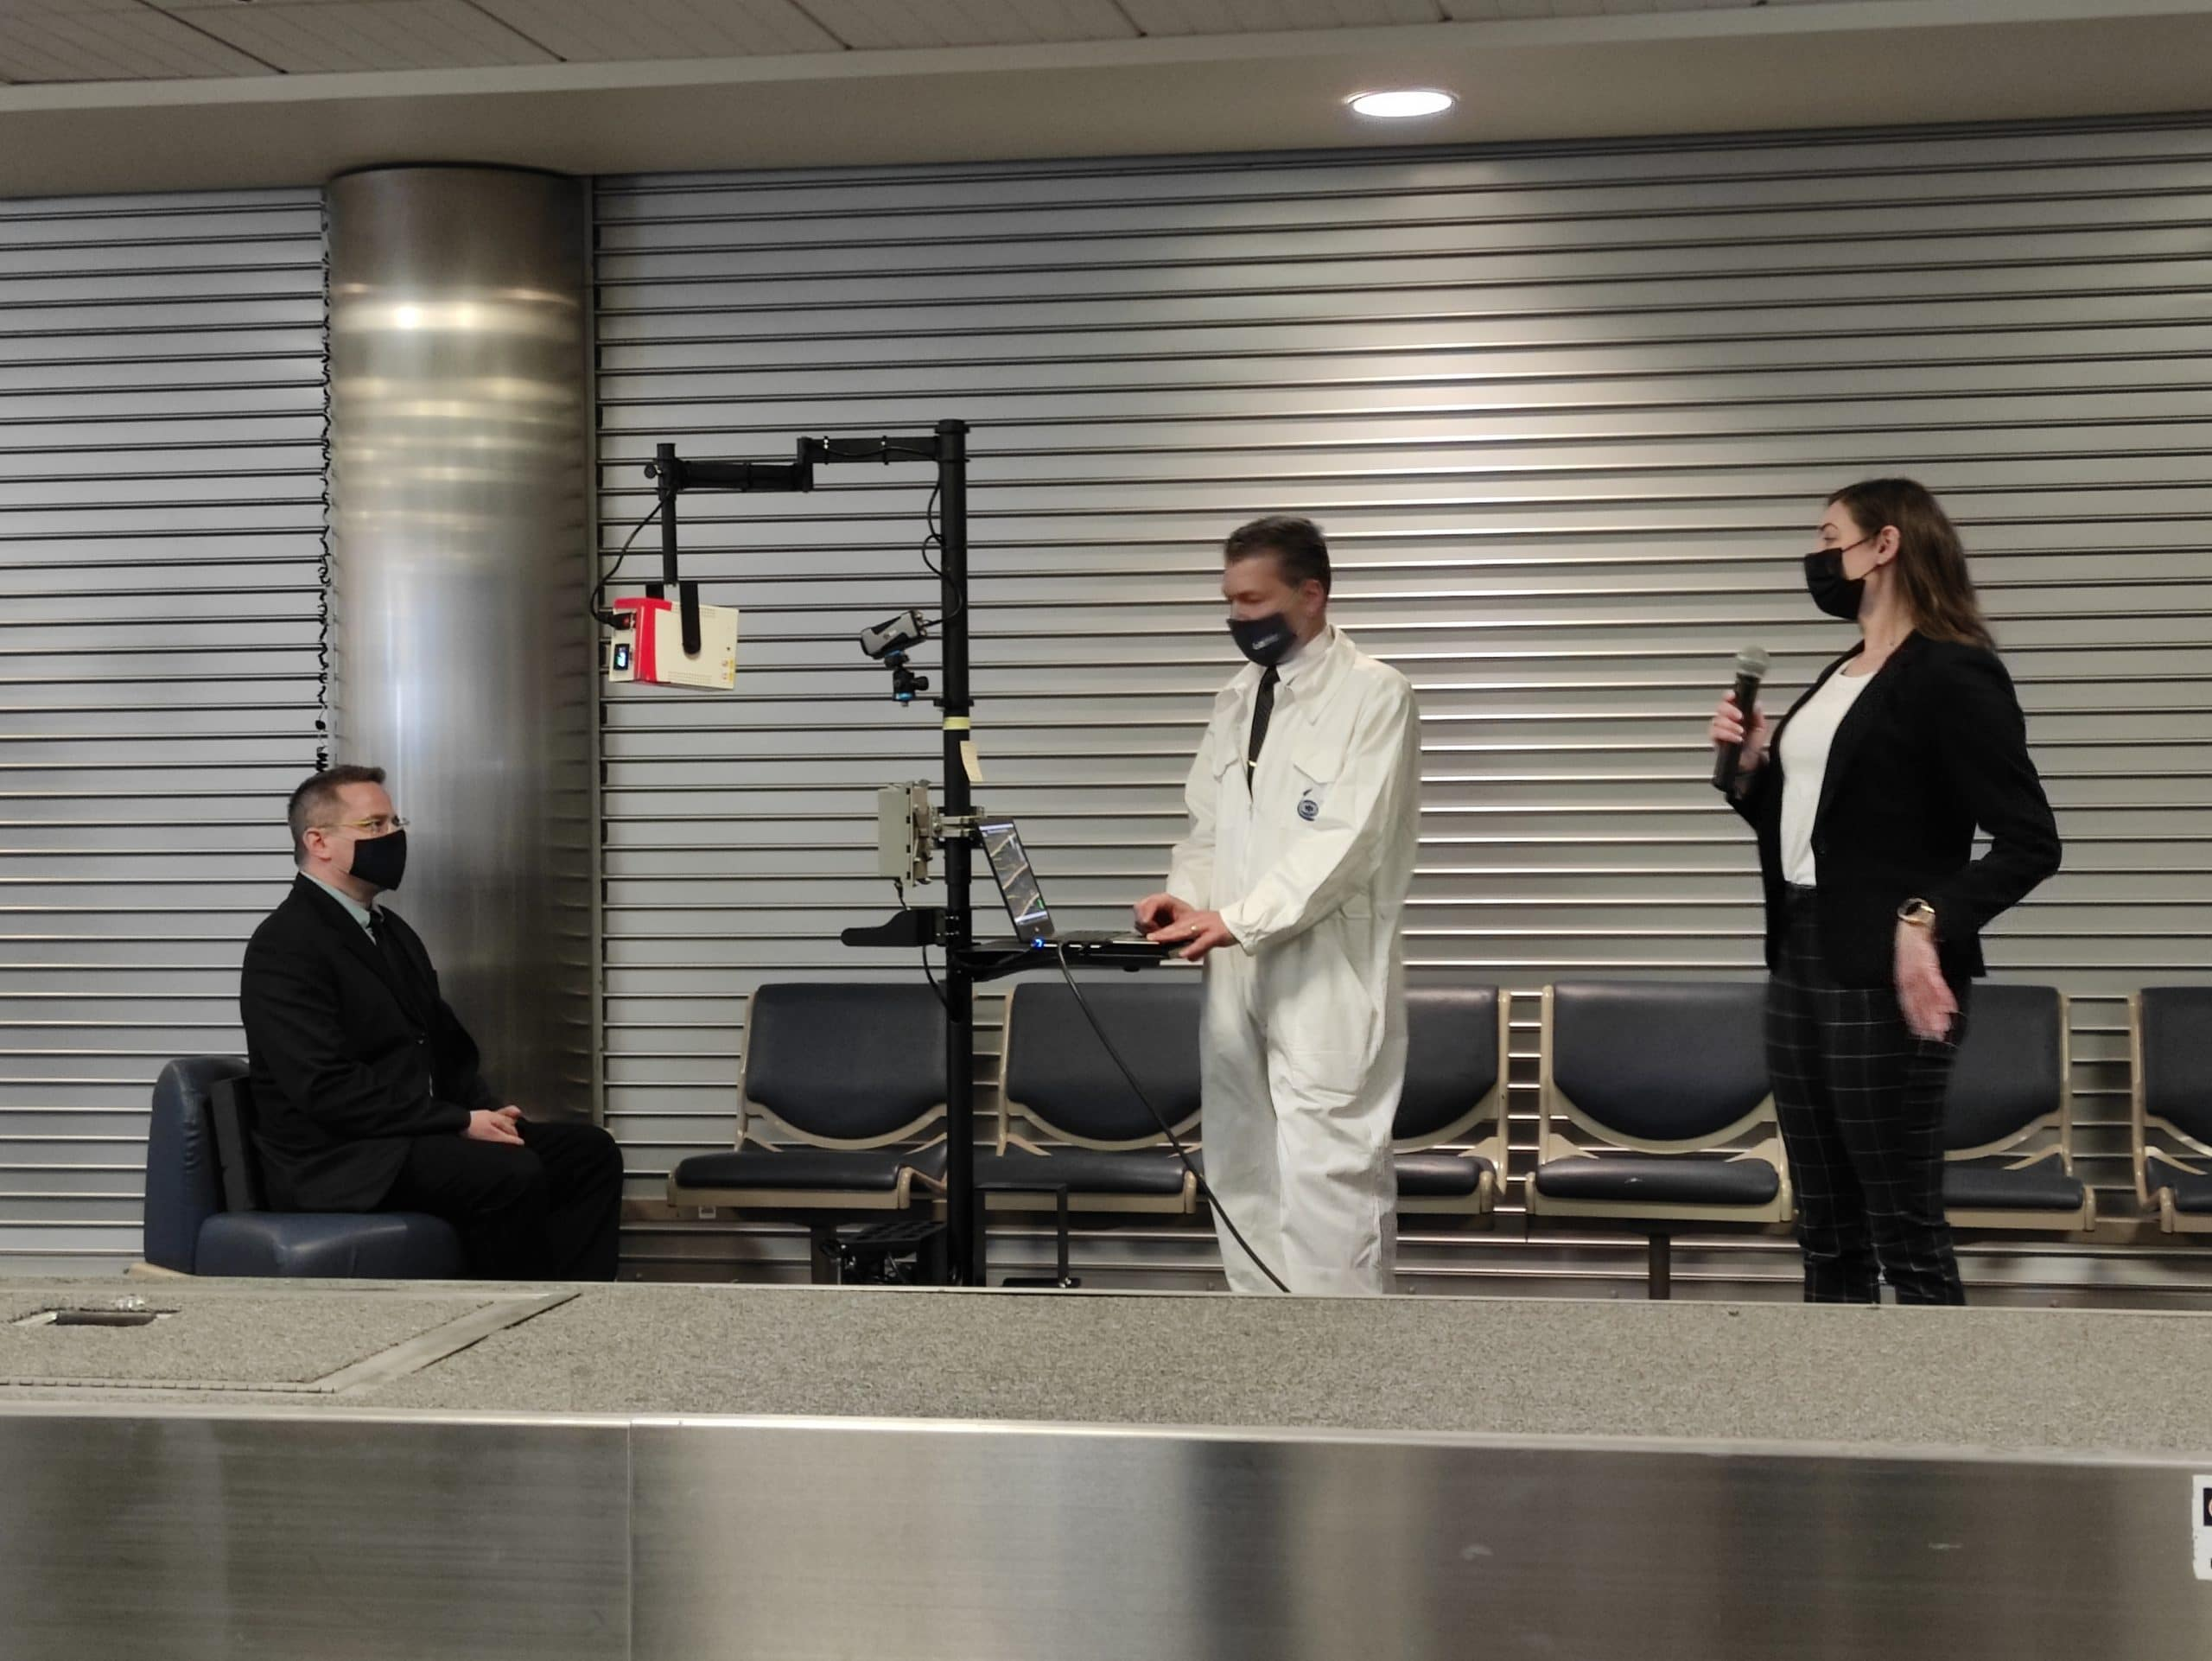 IAI Tests Safe Air Travel Products at Atlantic City International Airport 1